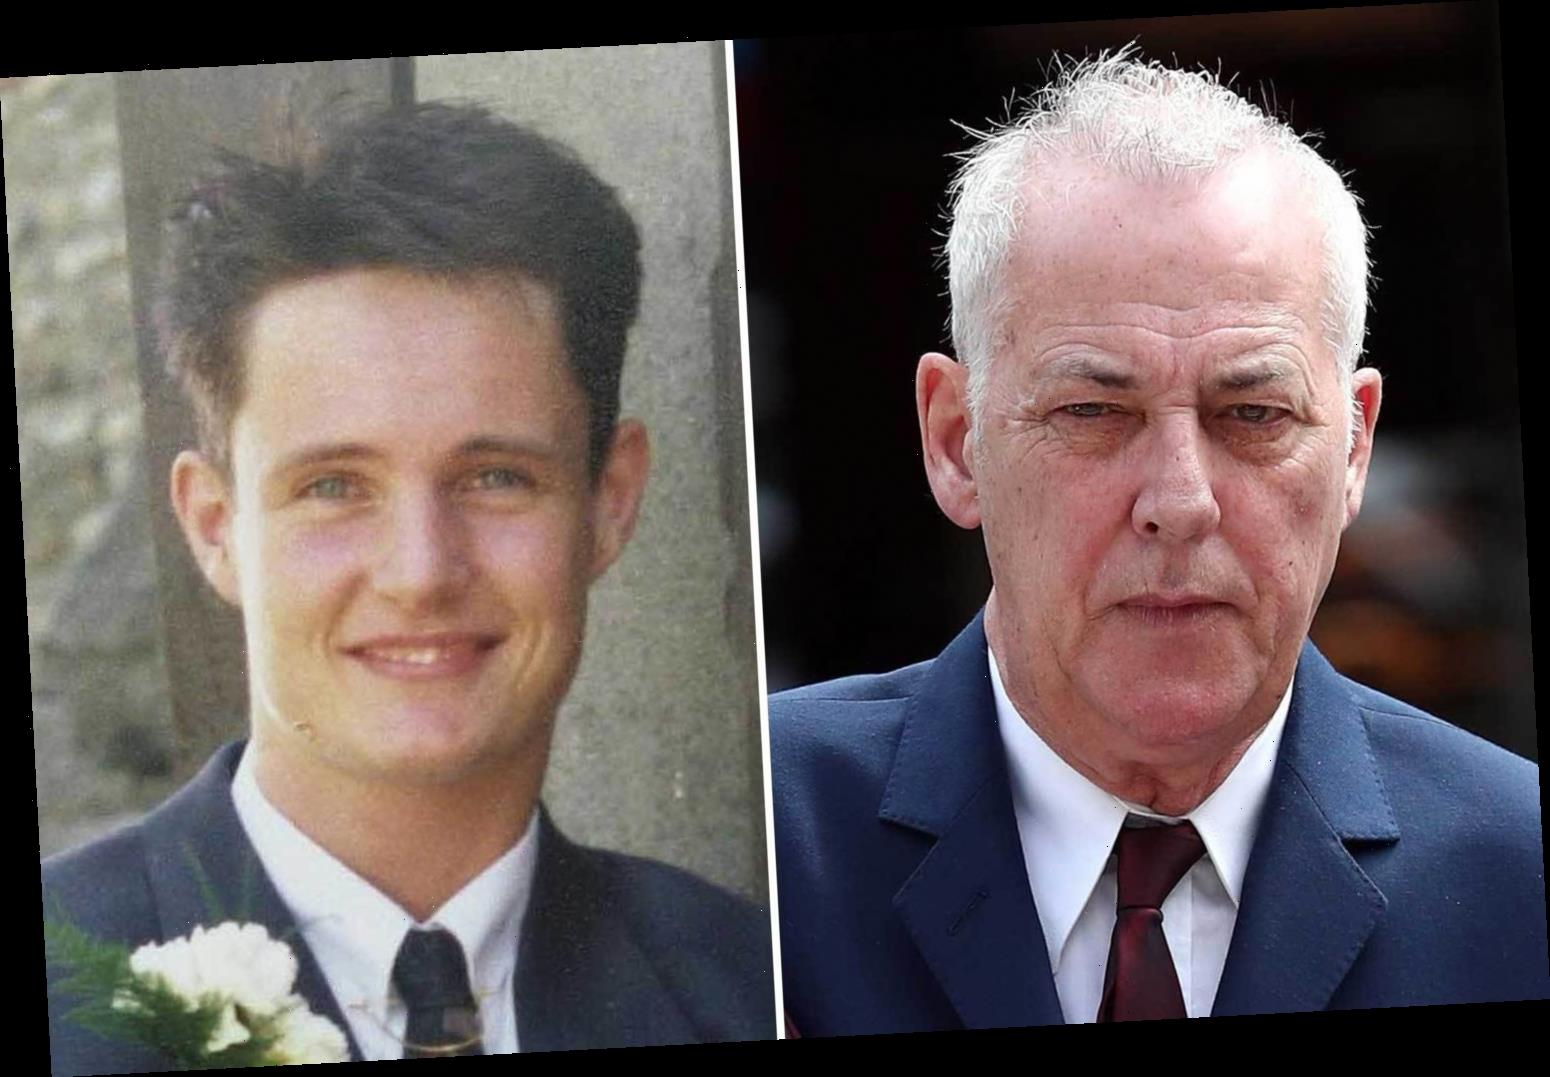 Michael Barrymore to be quizzed over Stuart Lubbock's death in first TV interview since cops reopened their probe – The Sun